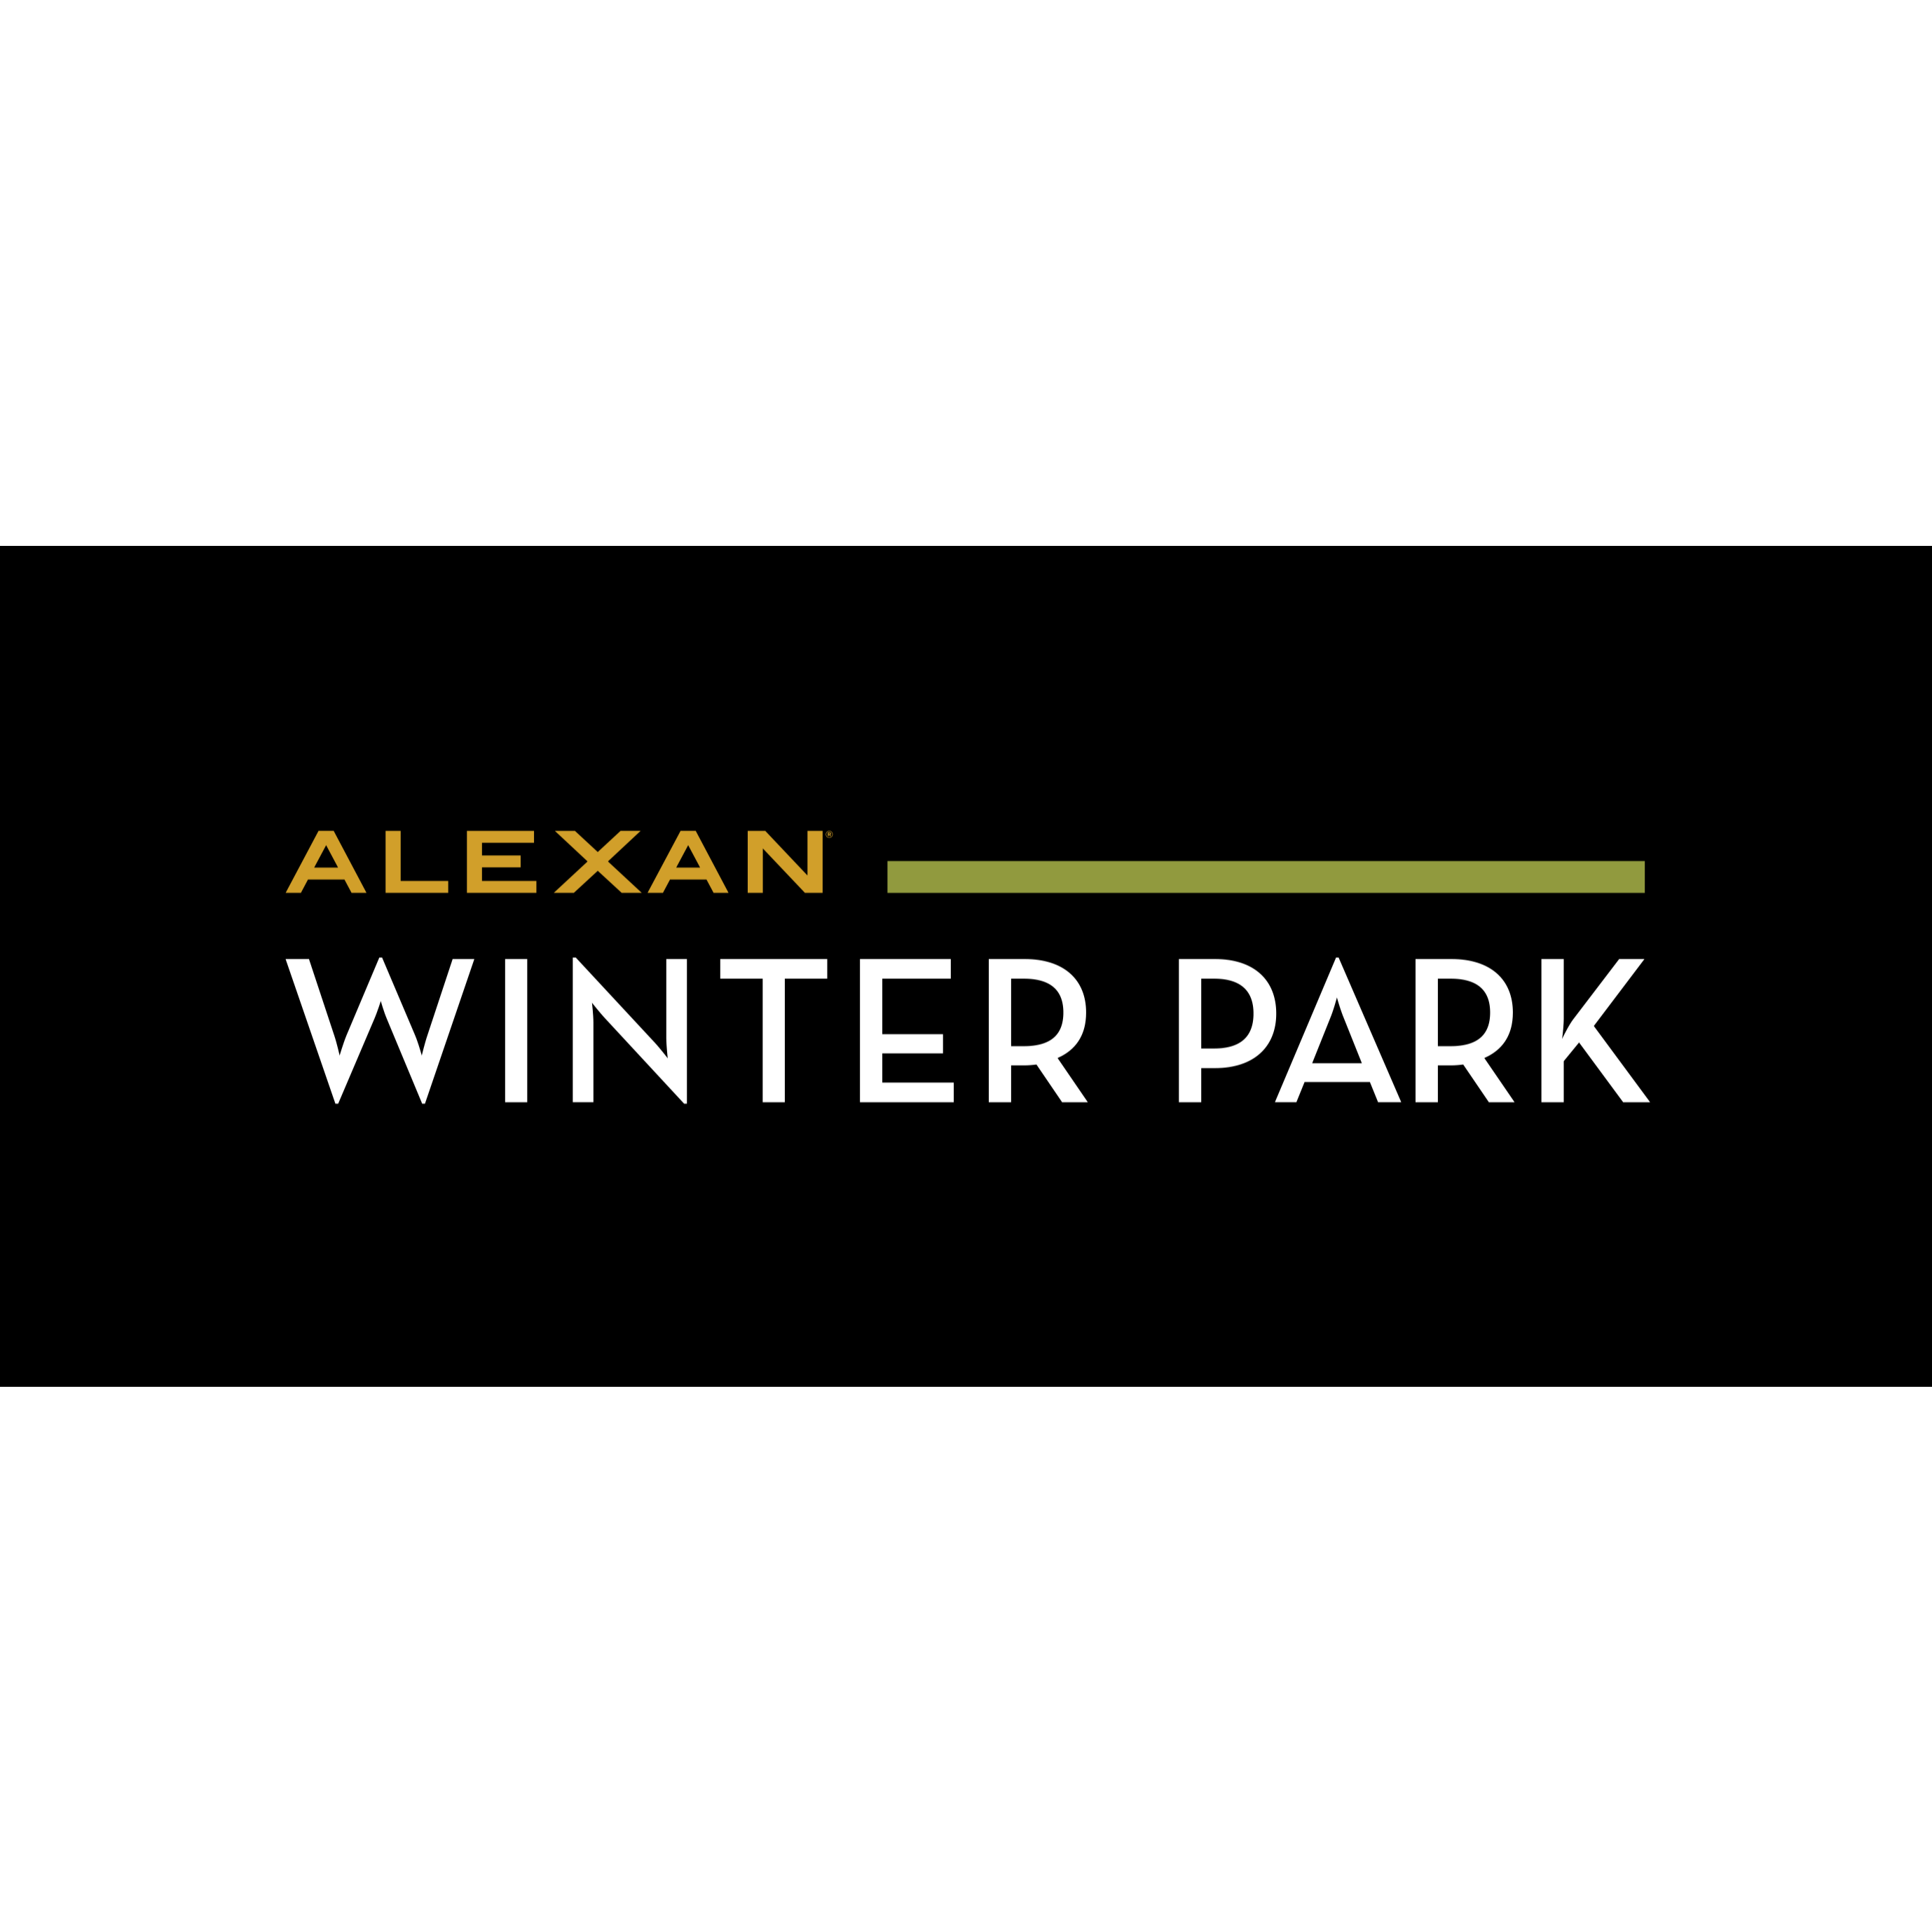 Alexan Winter Park